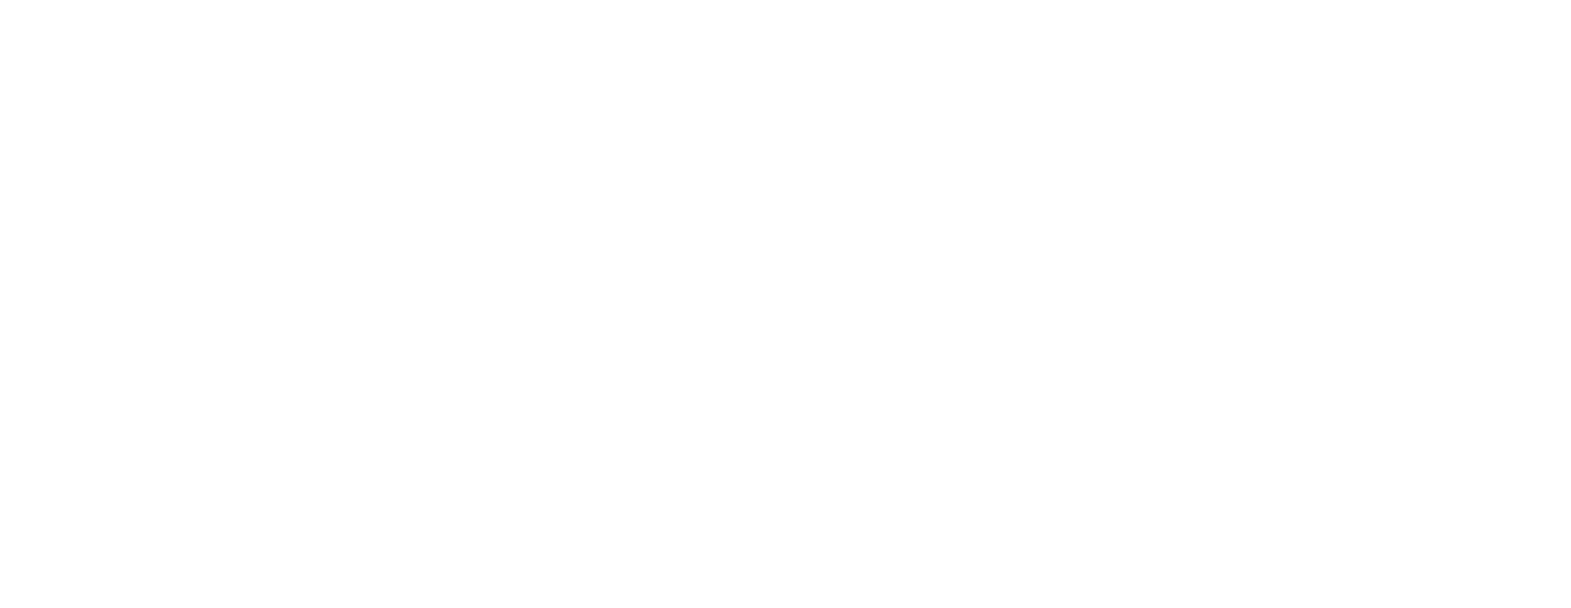 /local/templates/arben-textile/img/academy-white.png